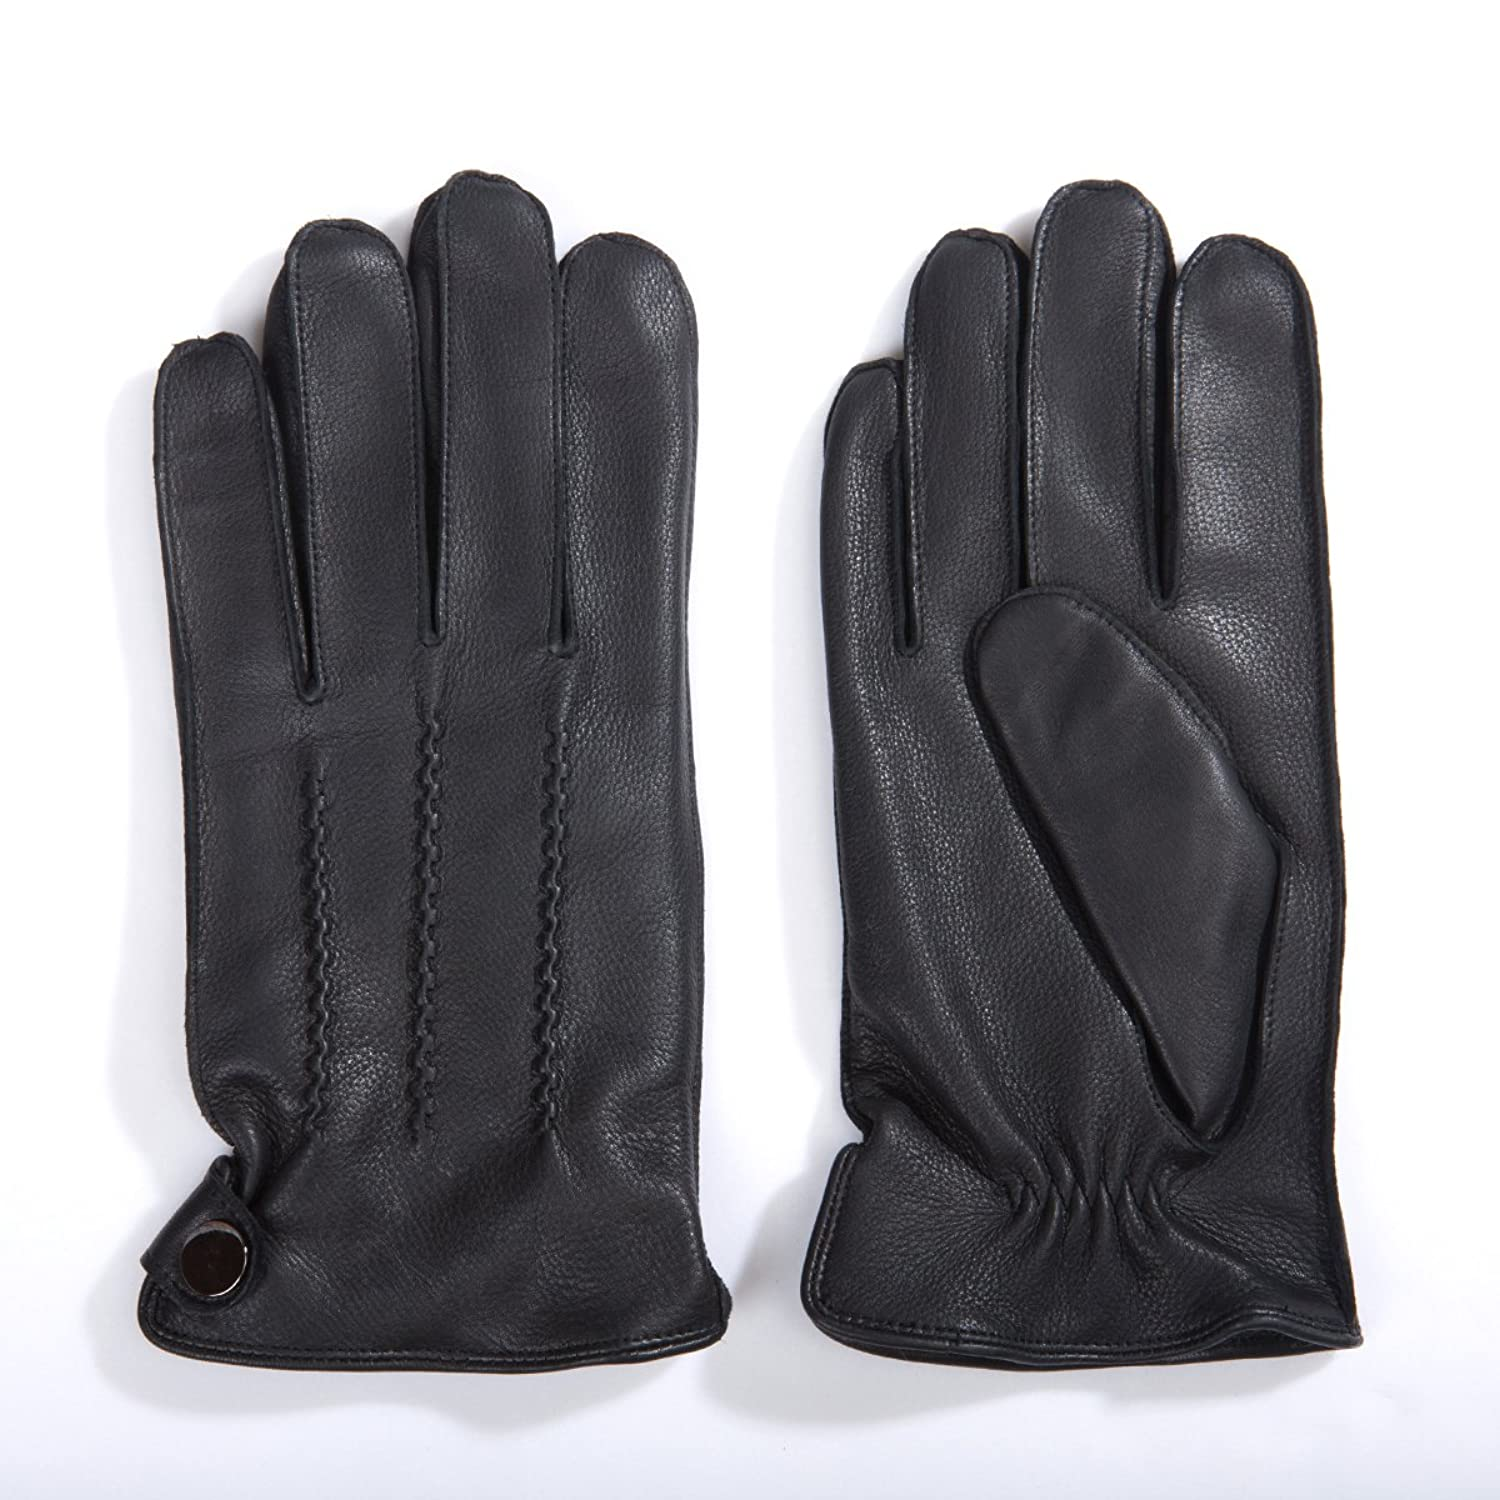 Mens gloves fashion - Matsu Men Winter Warm Deerskin Leather 100 Cashmere Lined Motorcycle Driving Dress Leather Gloves M1066 At Amazon Men S Clothing Store